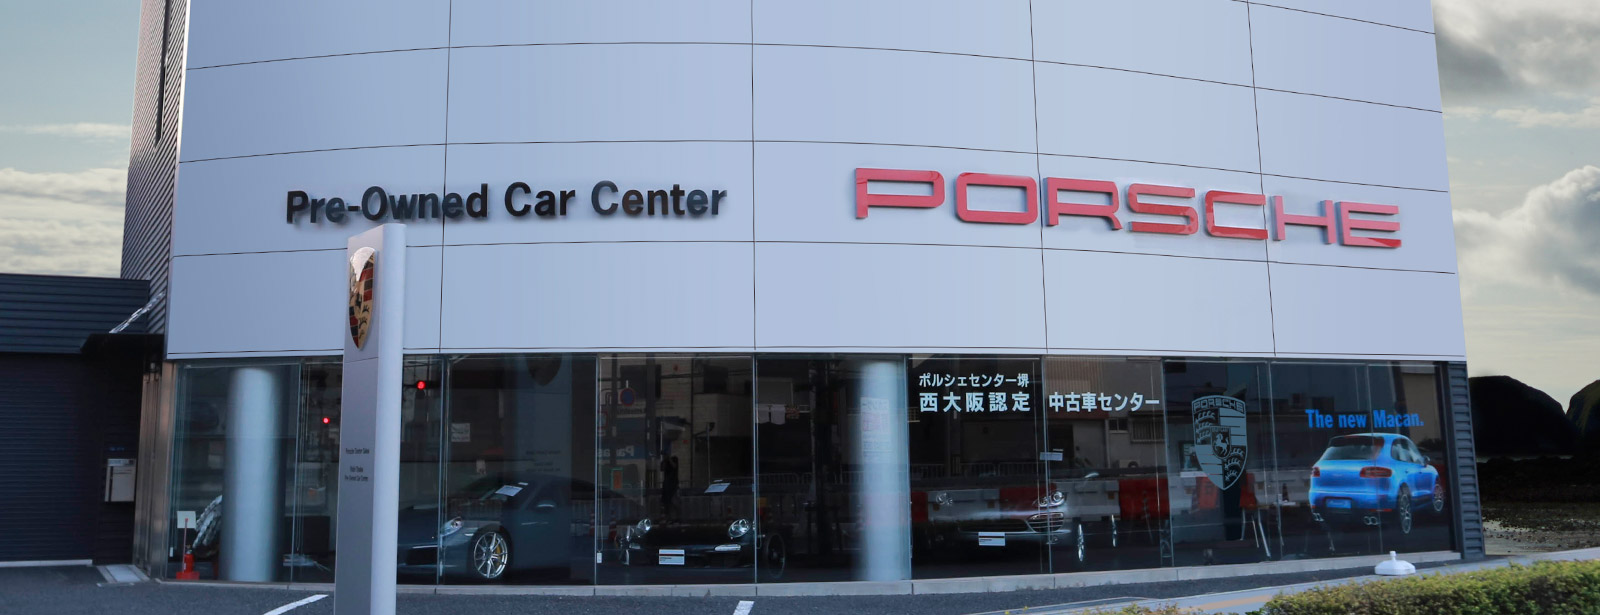 Porsche Center Nishi Osaka Pre-Owned Car Center.